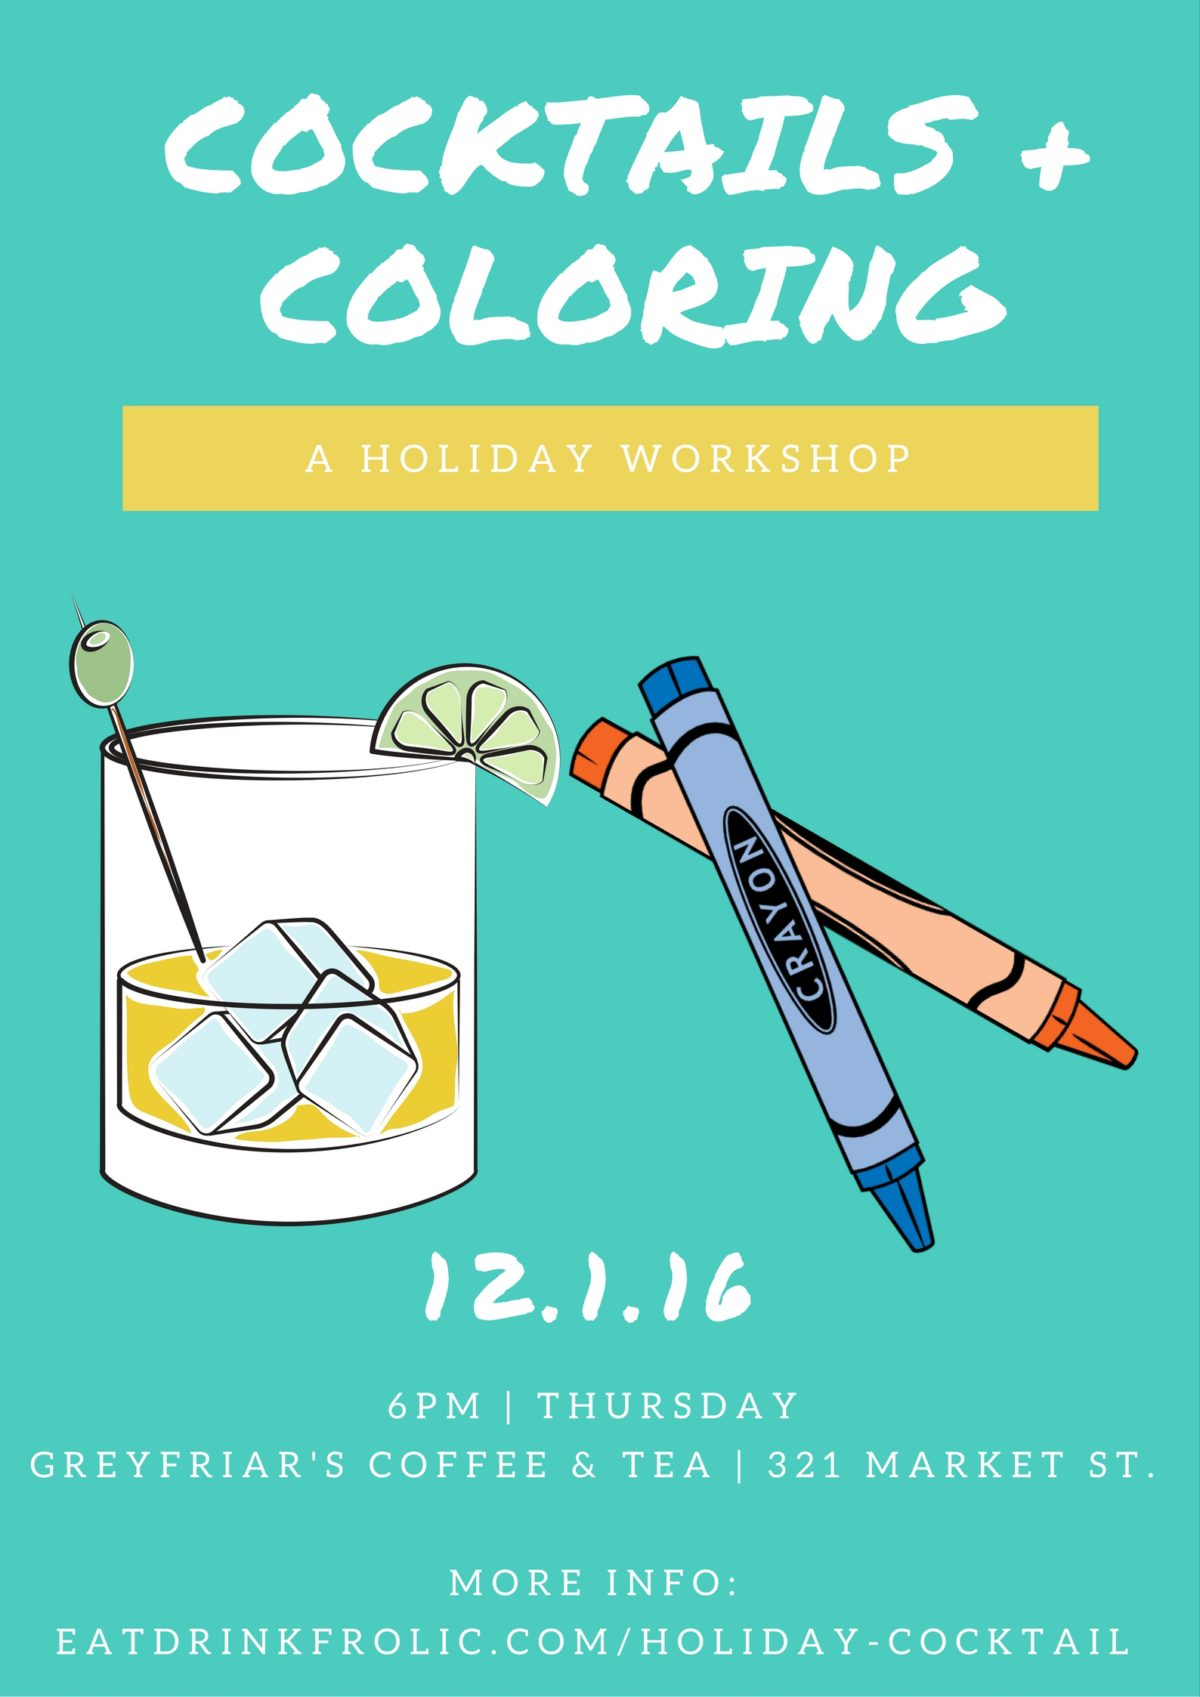 Join us for a holiday cocktail workshop where we'll learn and make cocktails perfect for your holiday table and dabble in a little coloring.